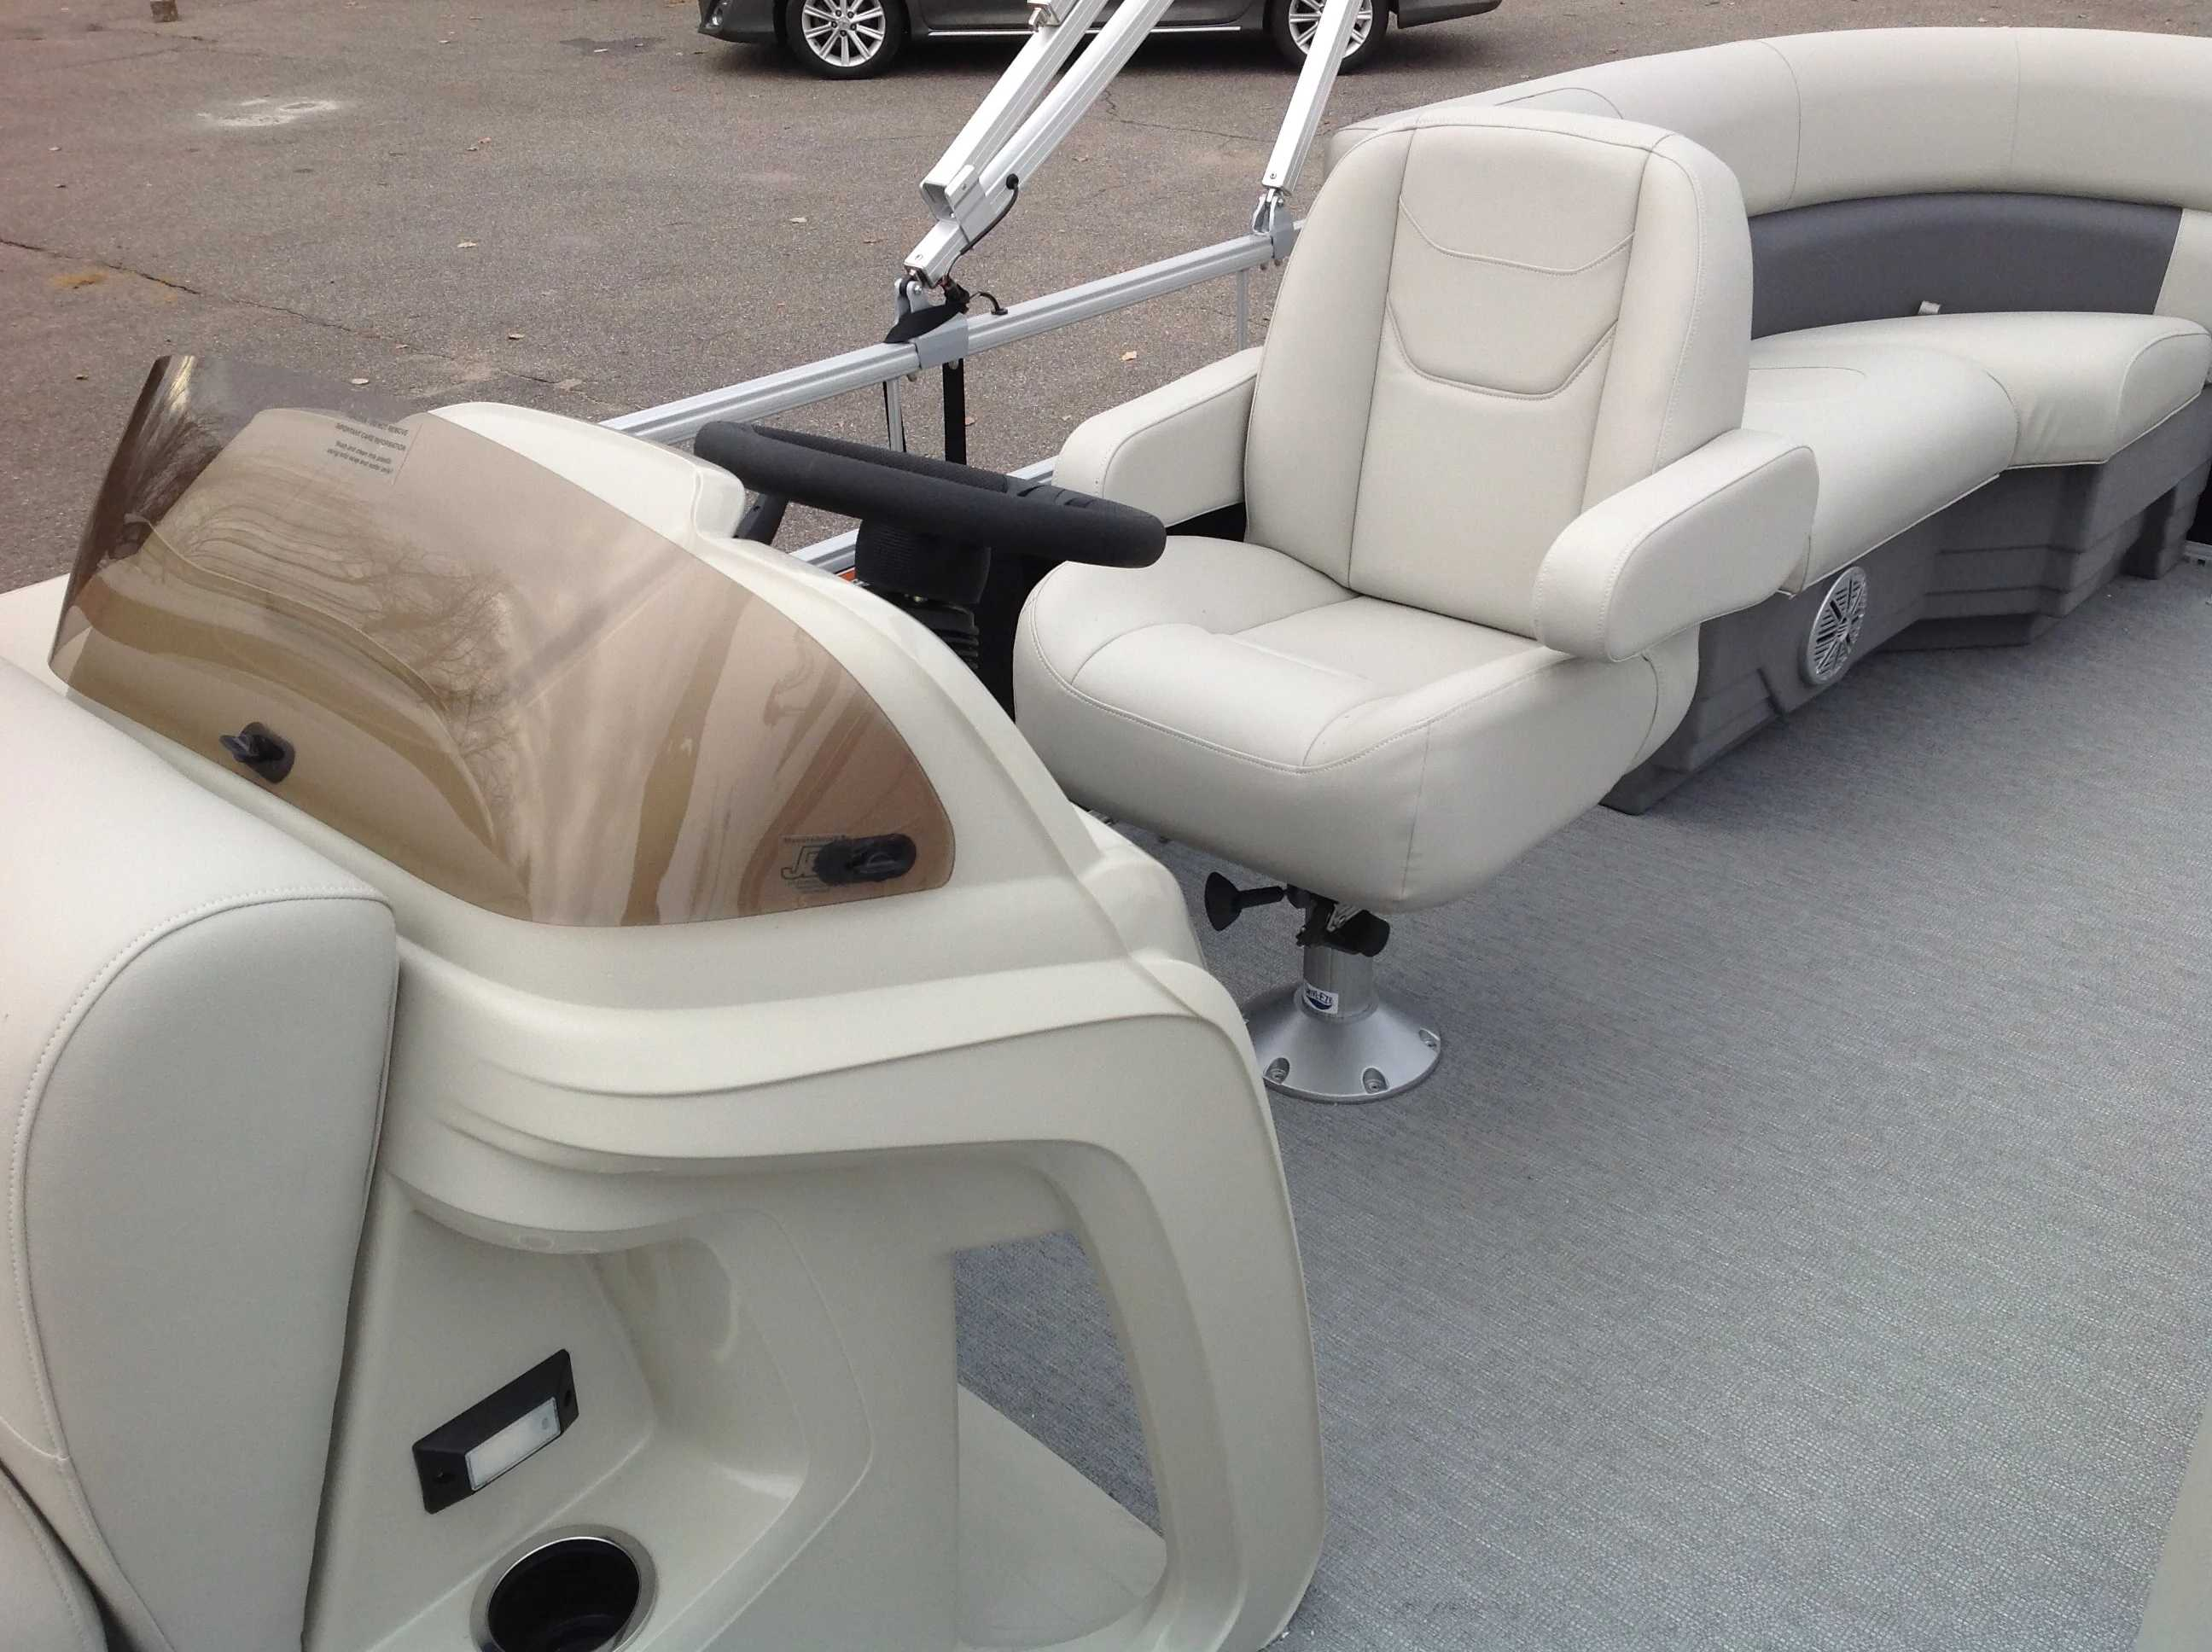 2021 SunChaser boat for sale, model of the boat is Sunchaser & Image # 6 of 10